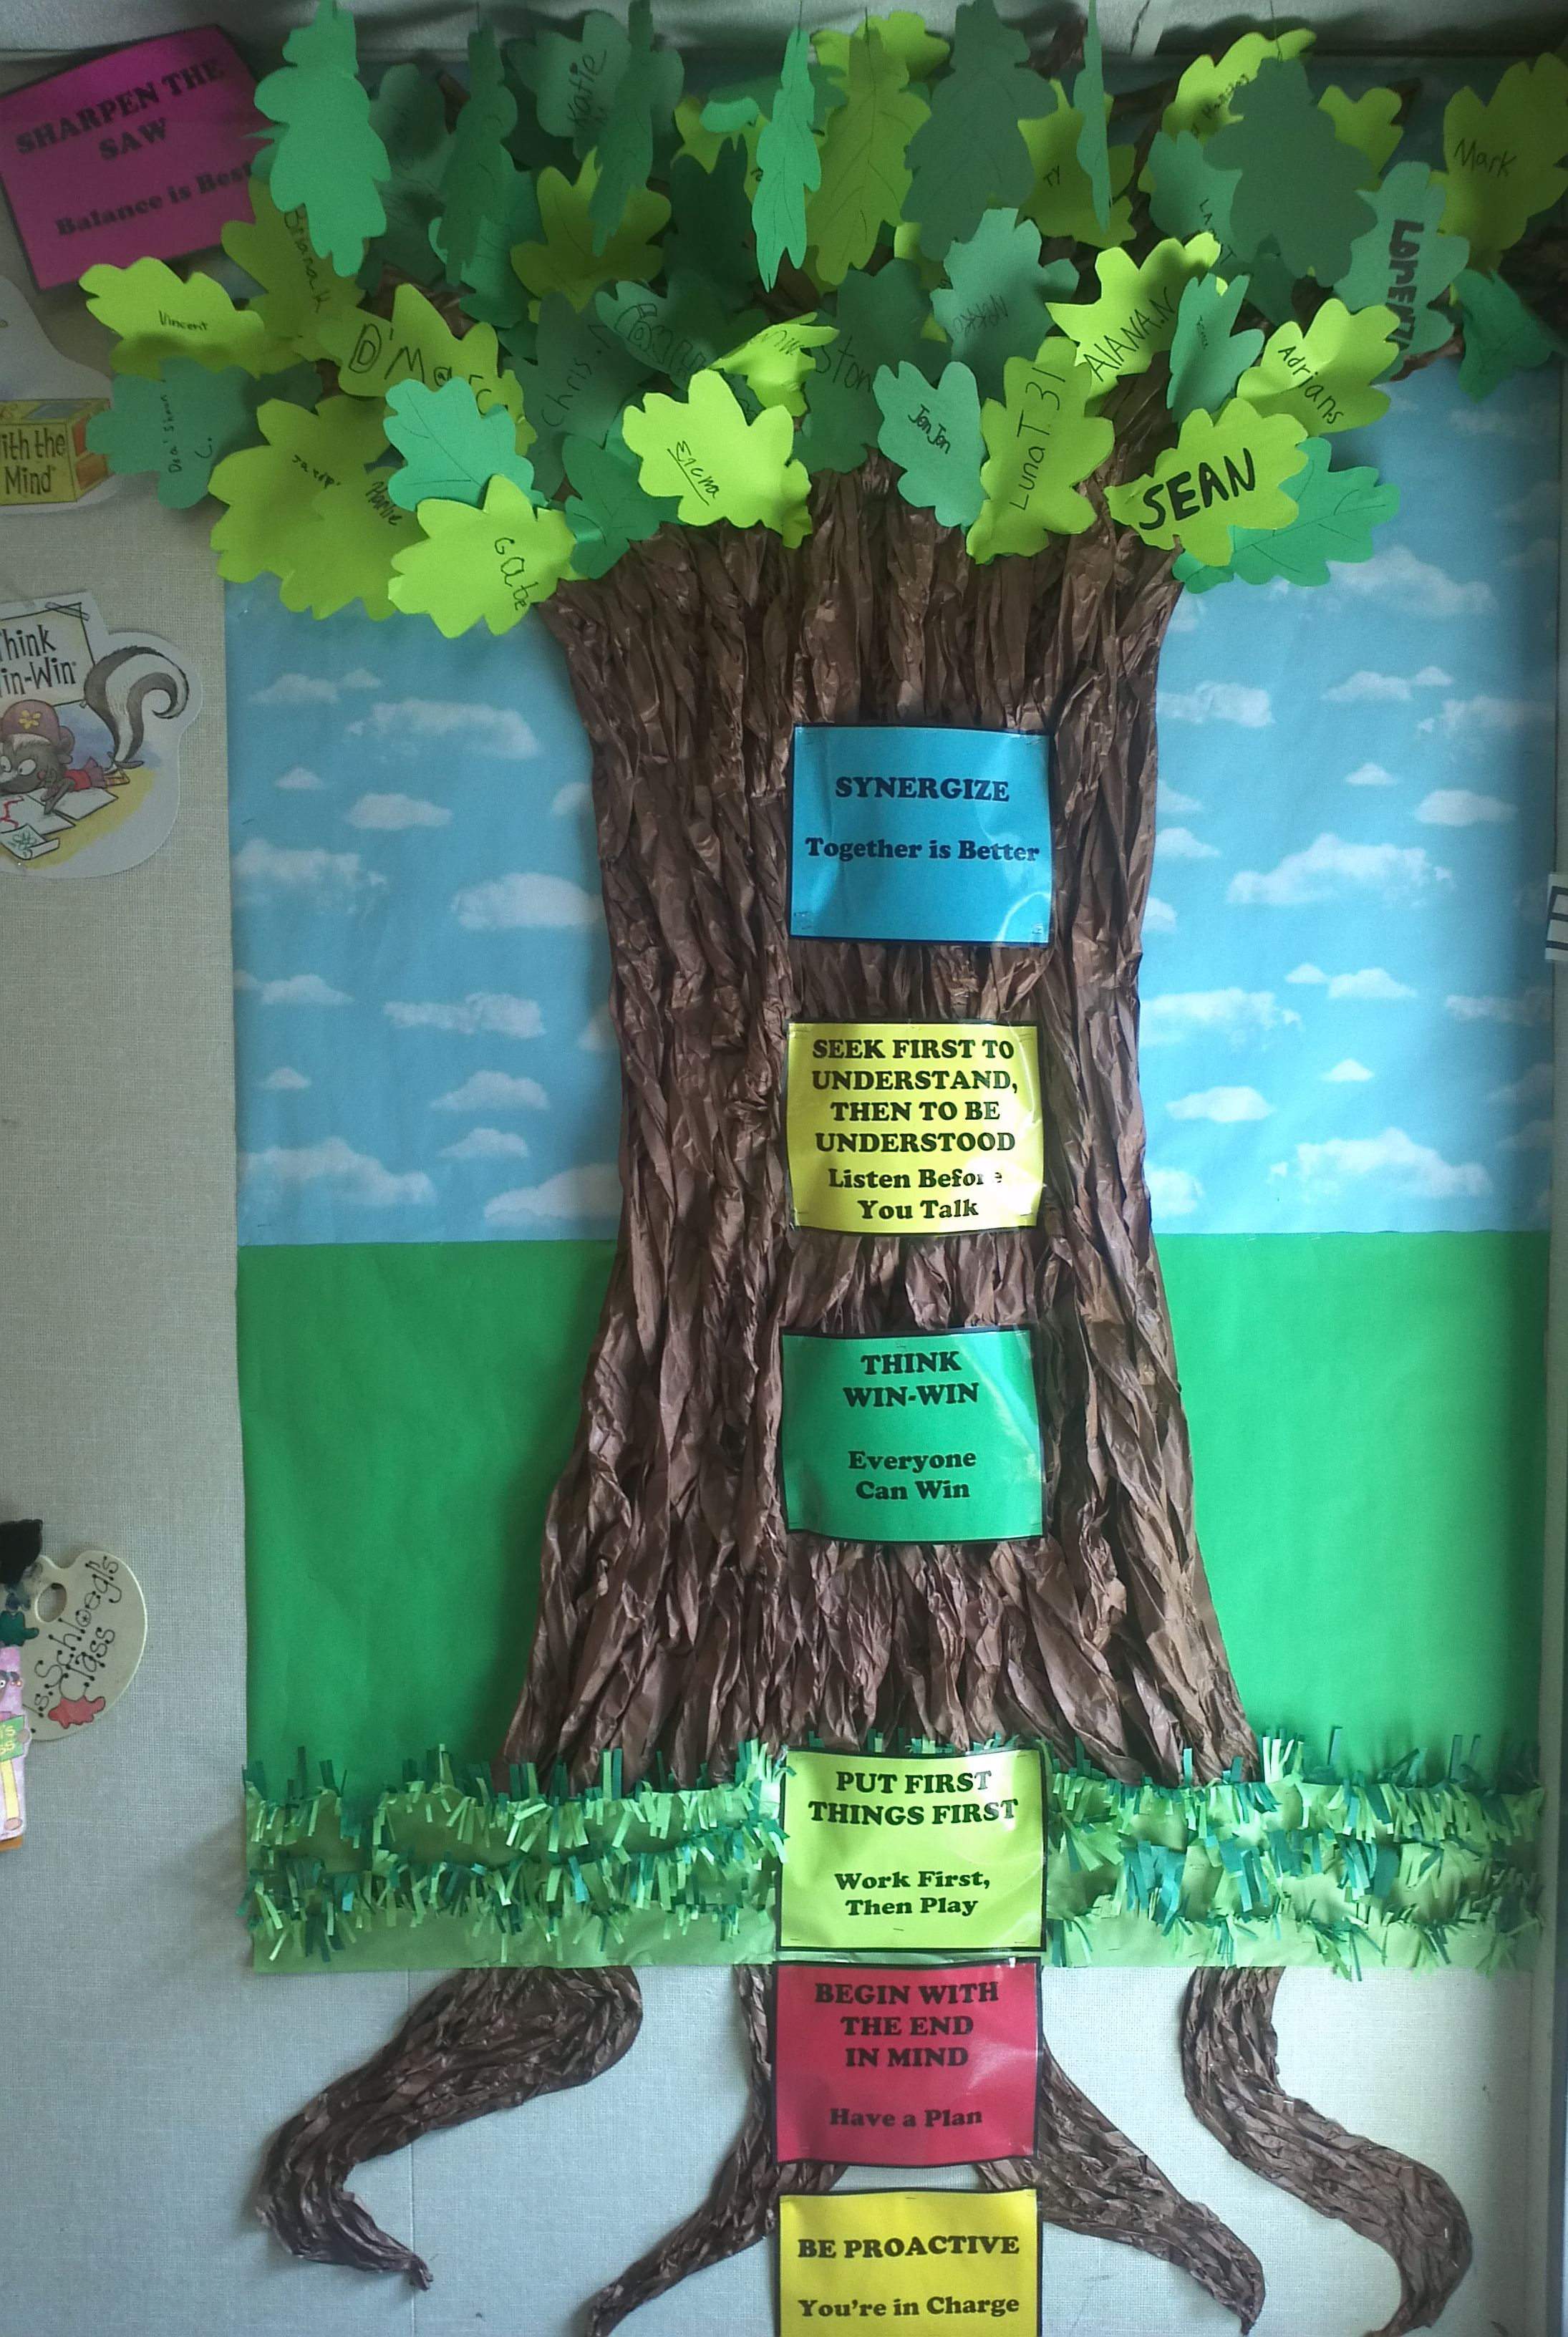 Our 7 habits tree in rsp the leader in me pinterest for 7 habits tree mural